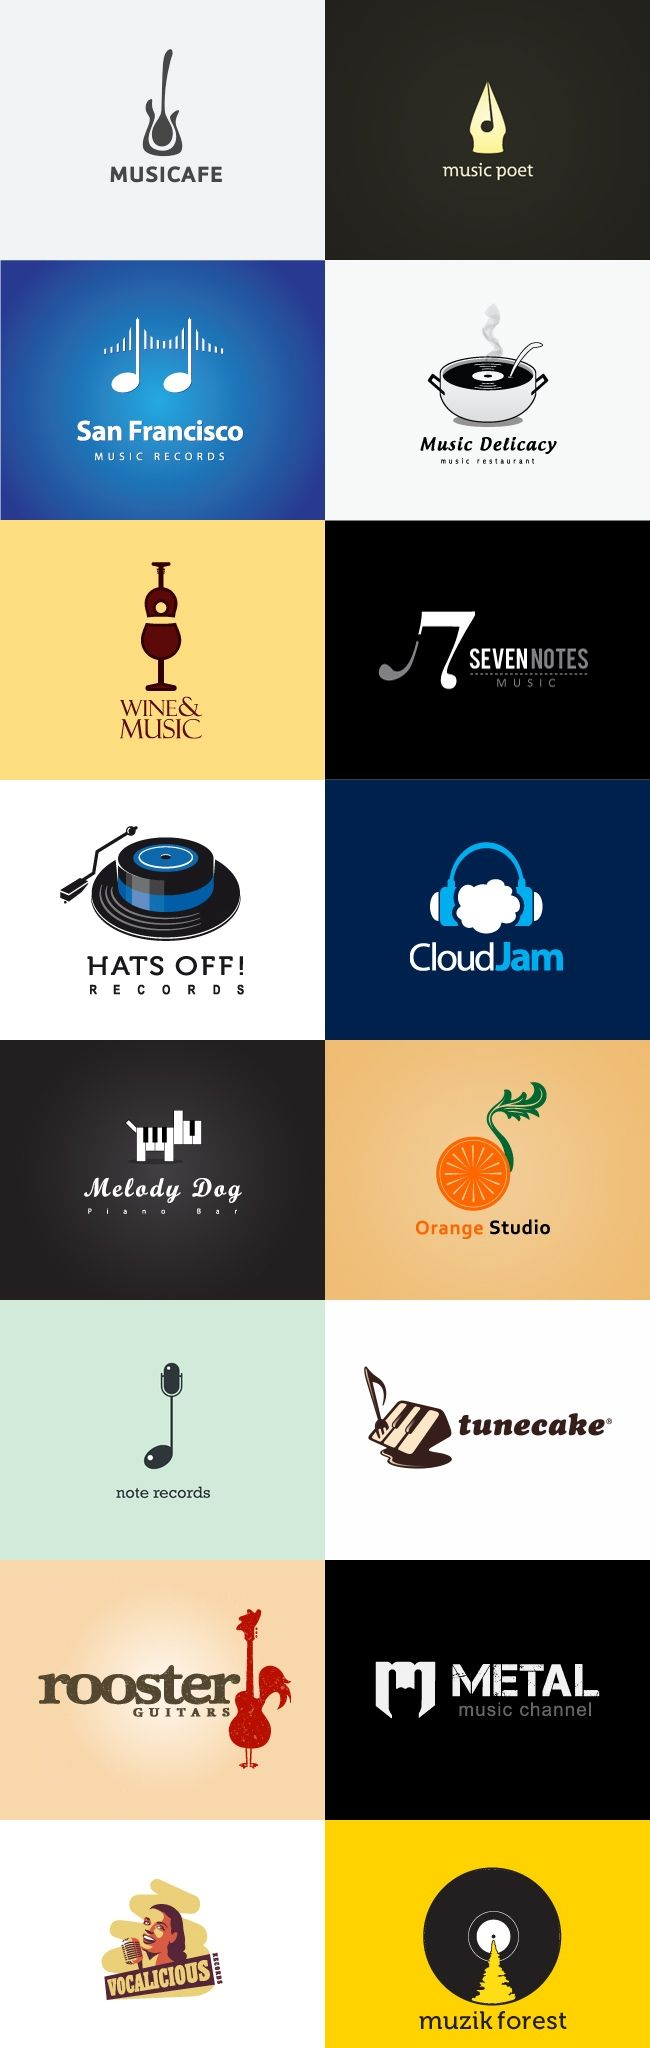 Logos with cc joy studio design gallery best design - De Pages Images News Find This Pin And More On Logos Design